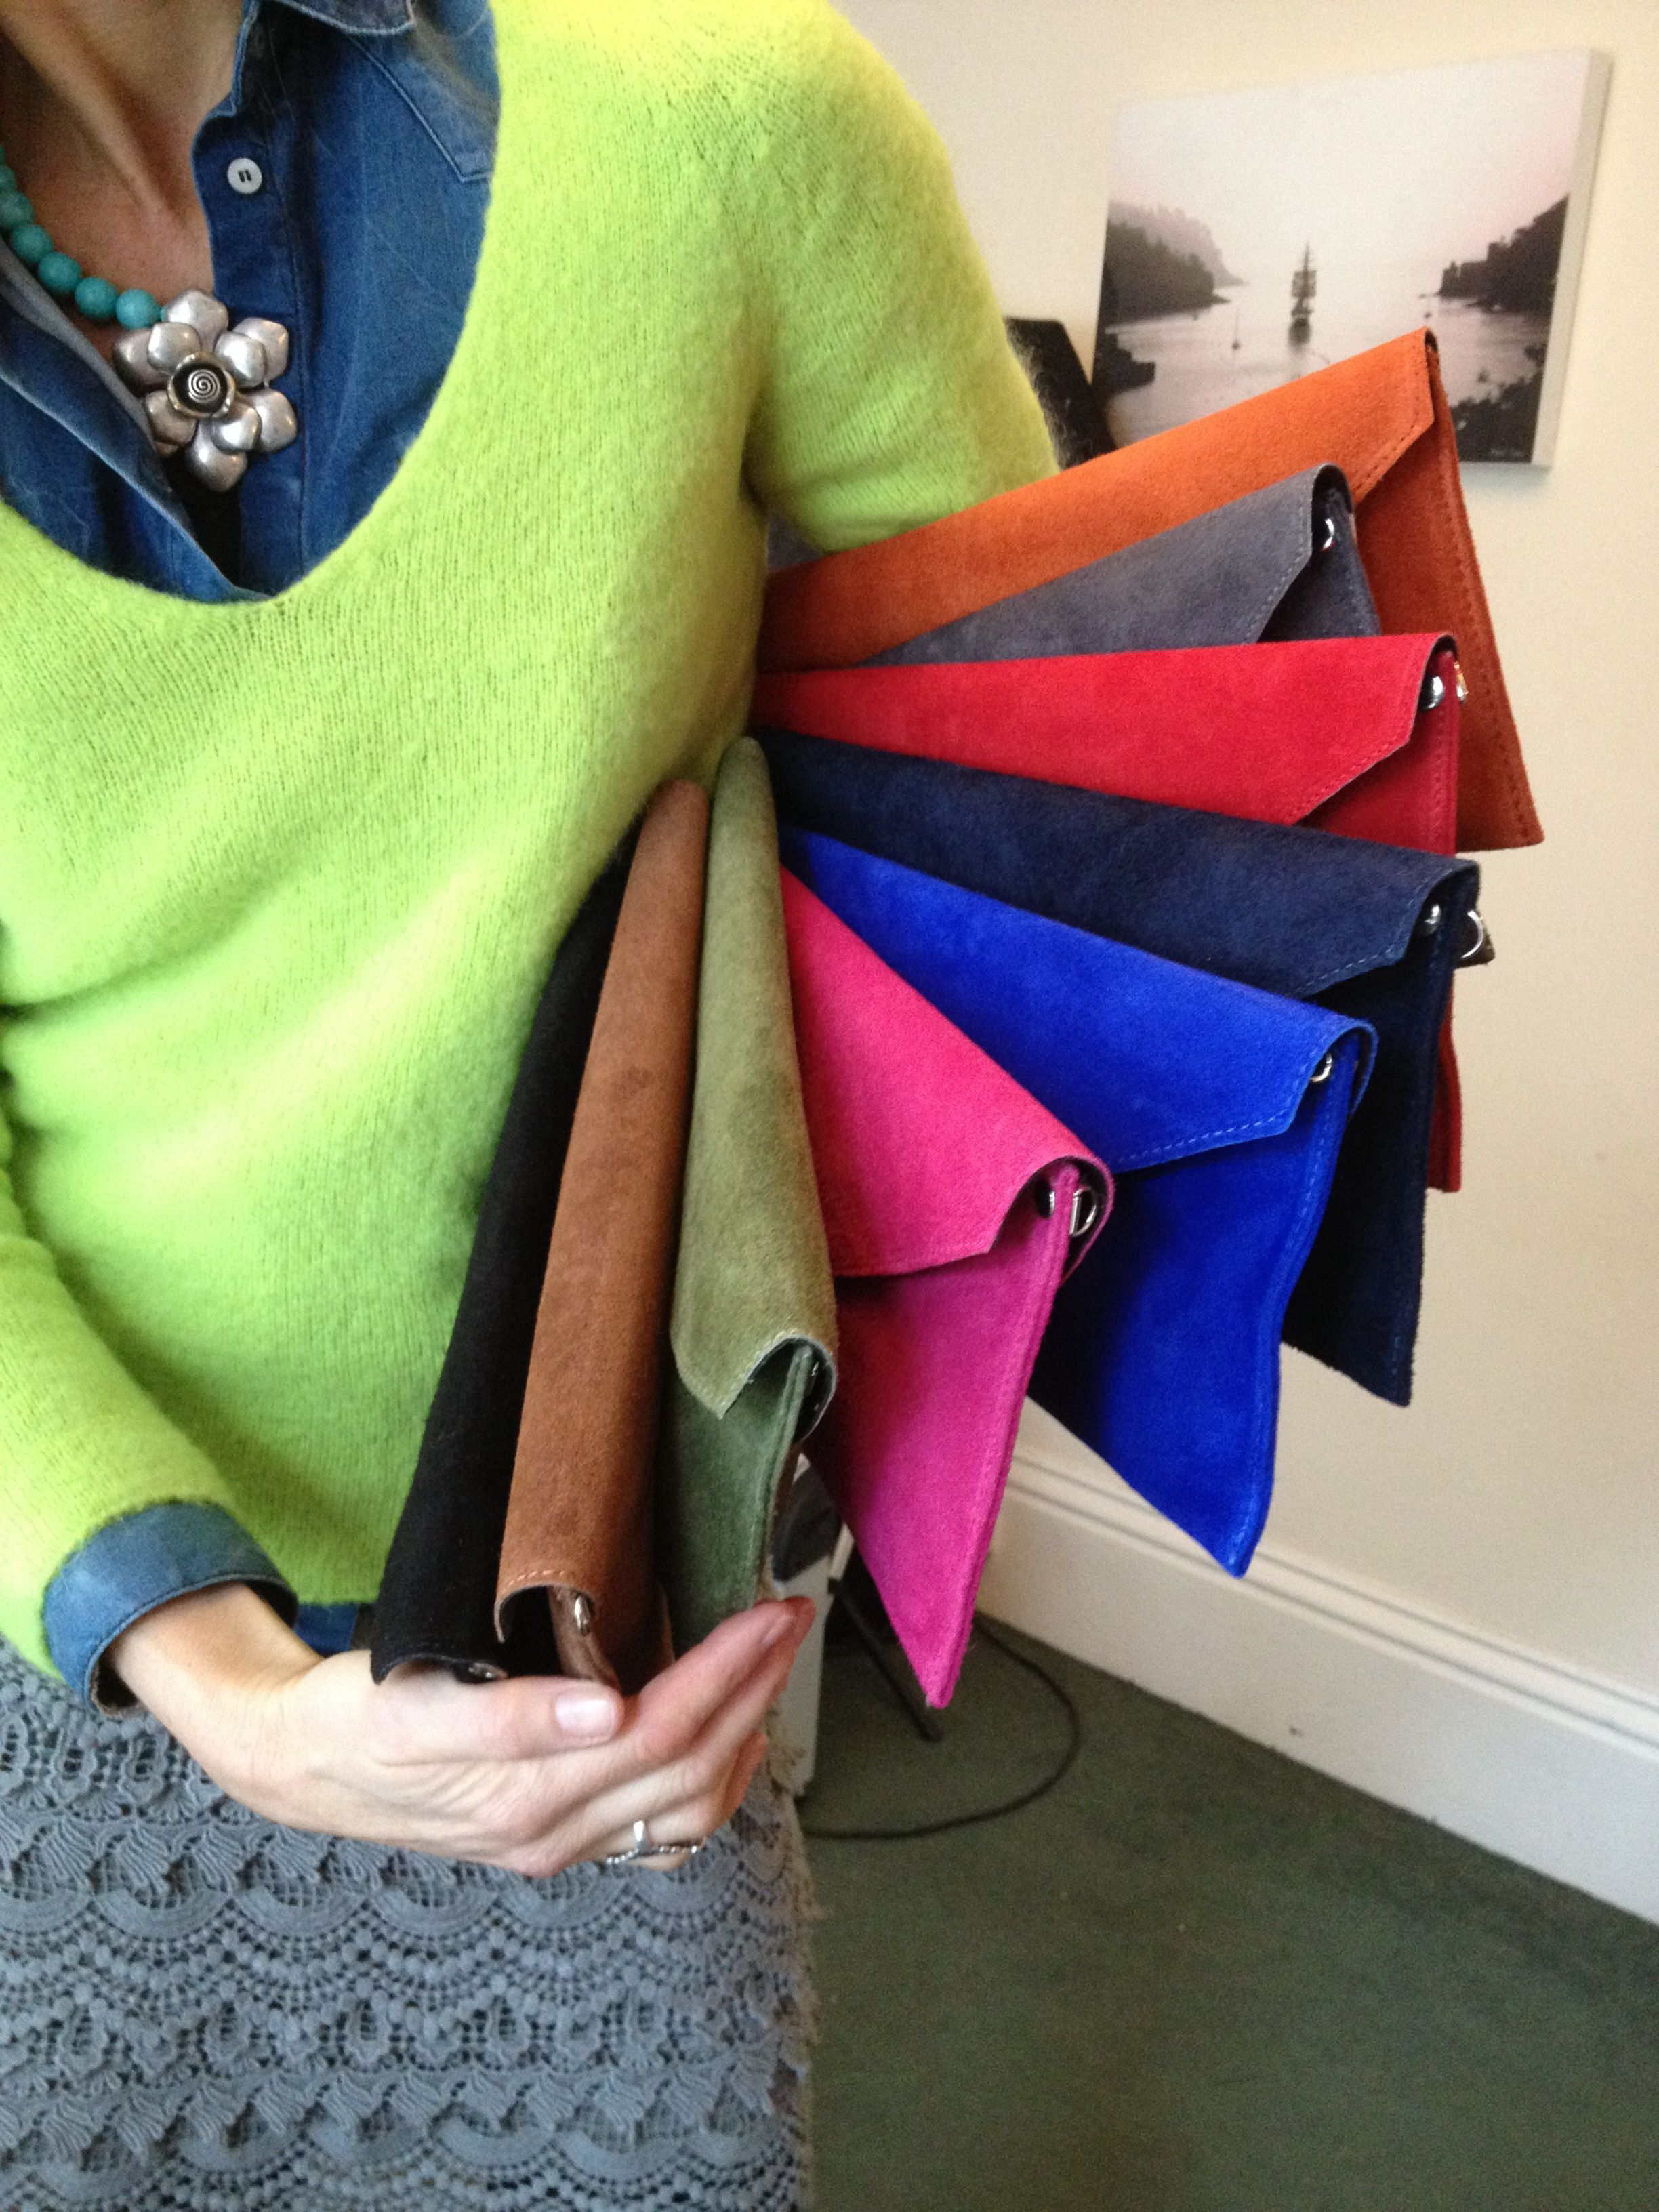 Which colour clutch bag would you choose?